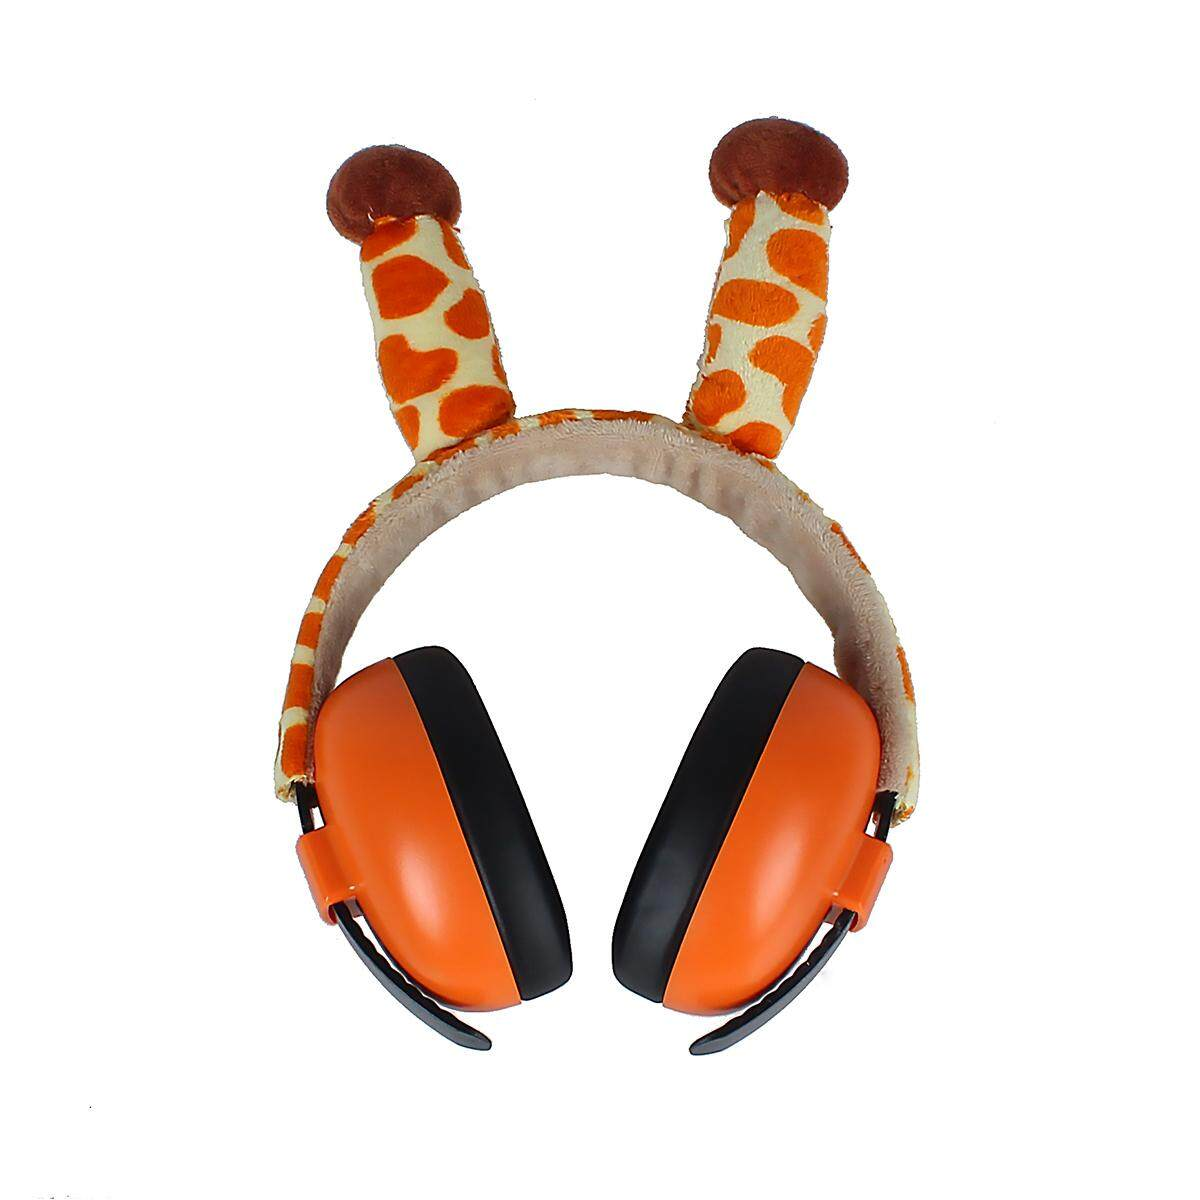 Baby Earmuffs Ear Hearing Protection Noise Cancelling Headphones For Kids Gifts